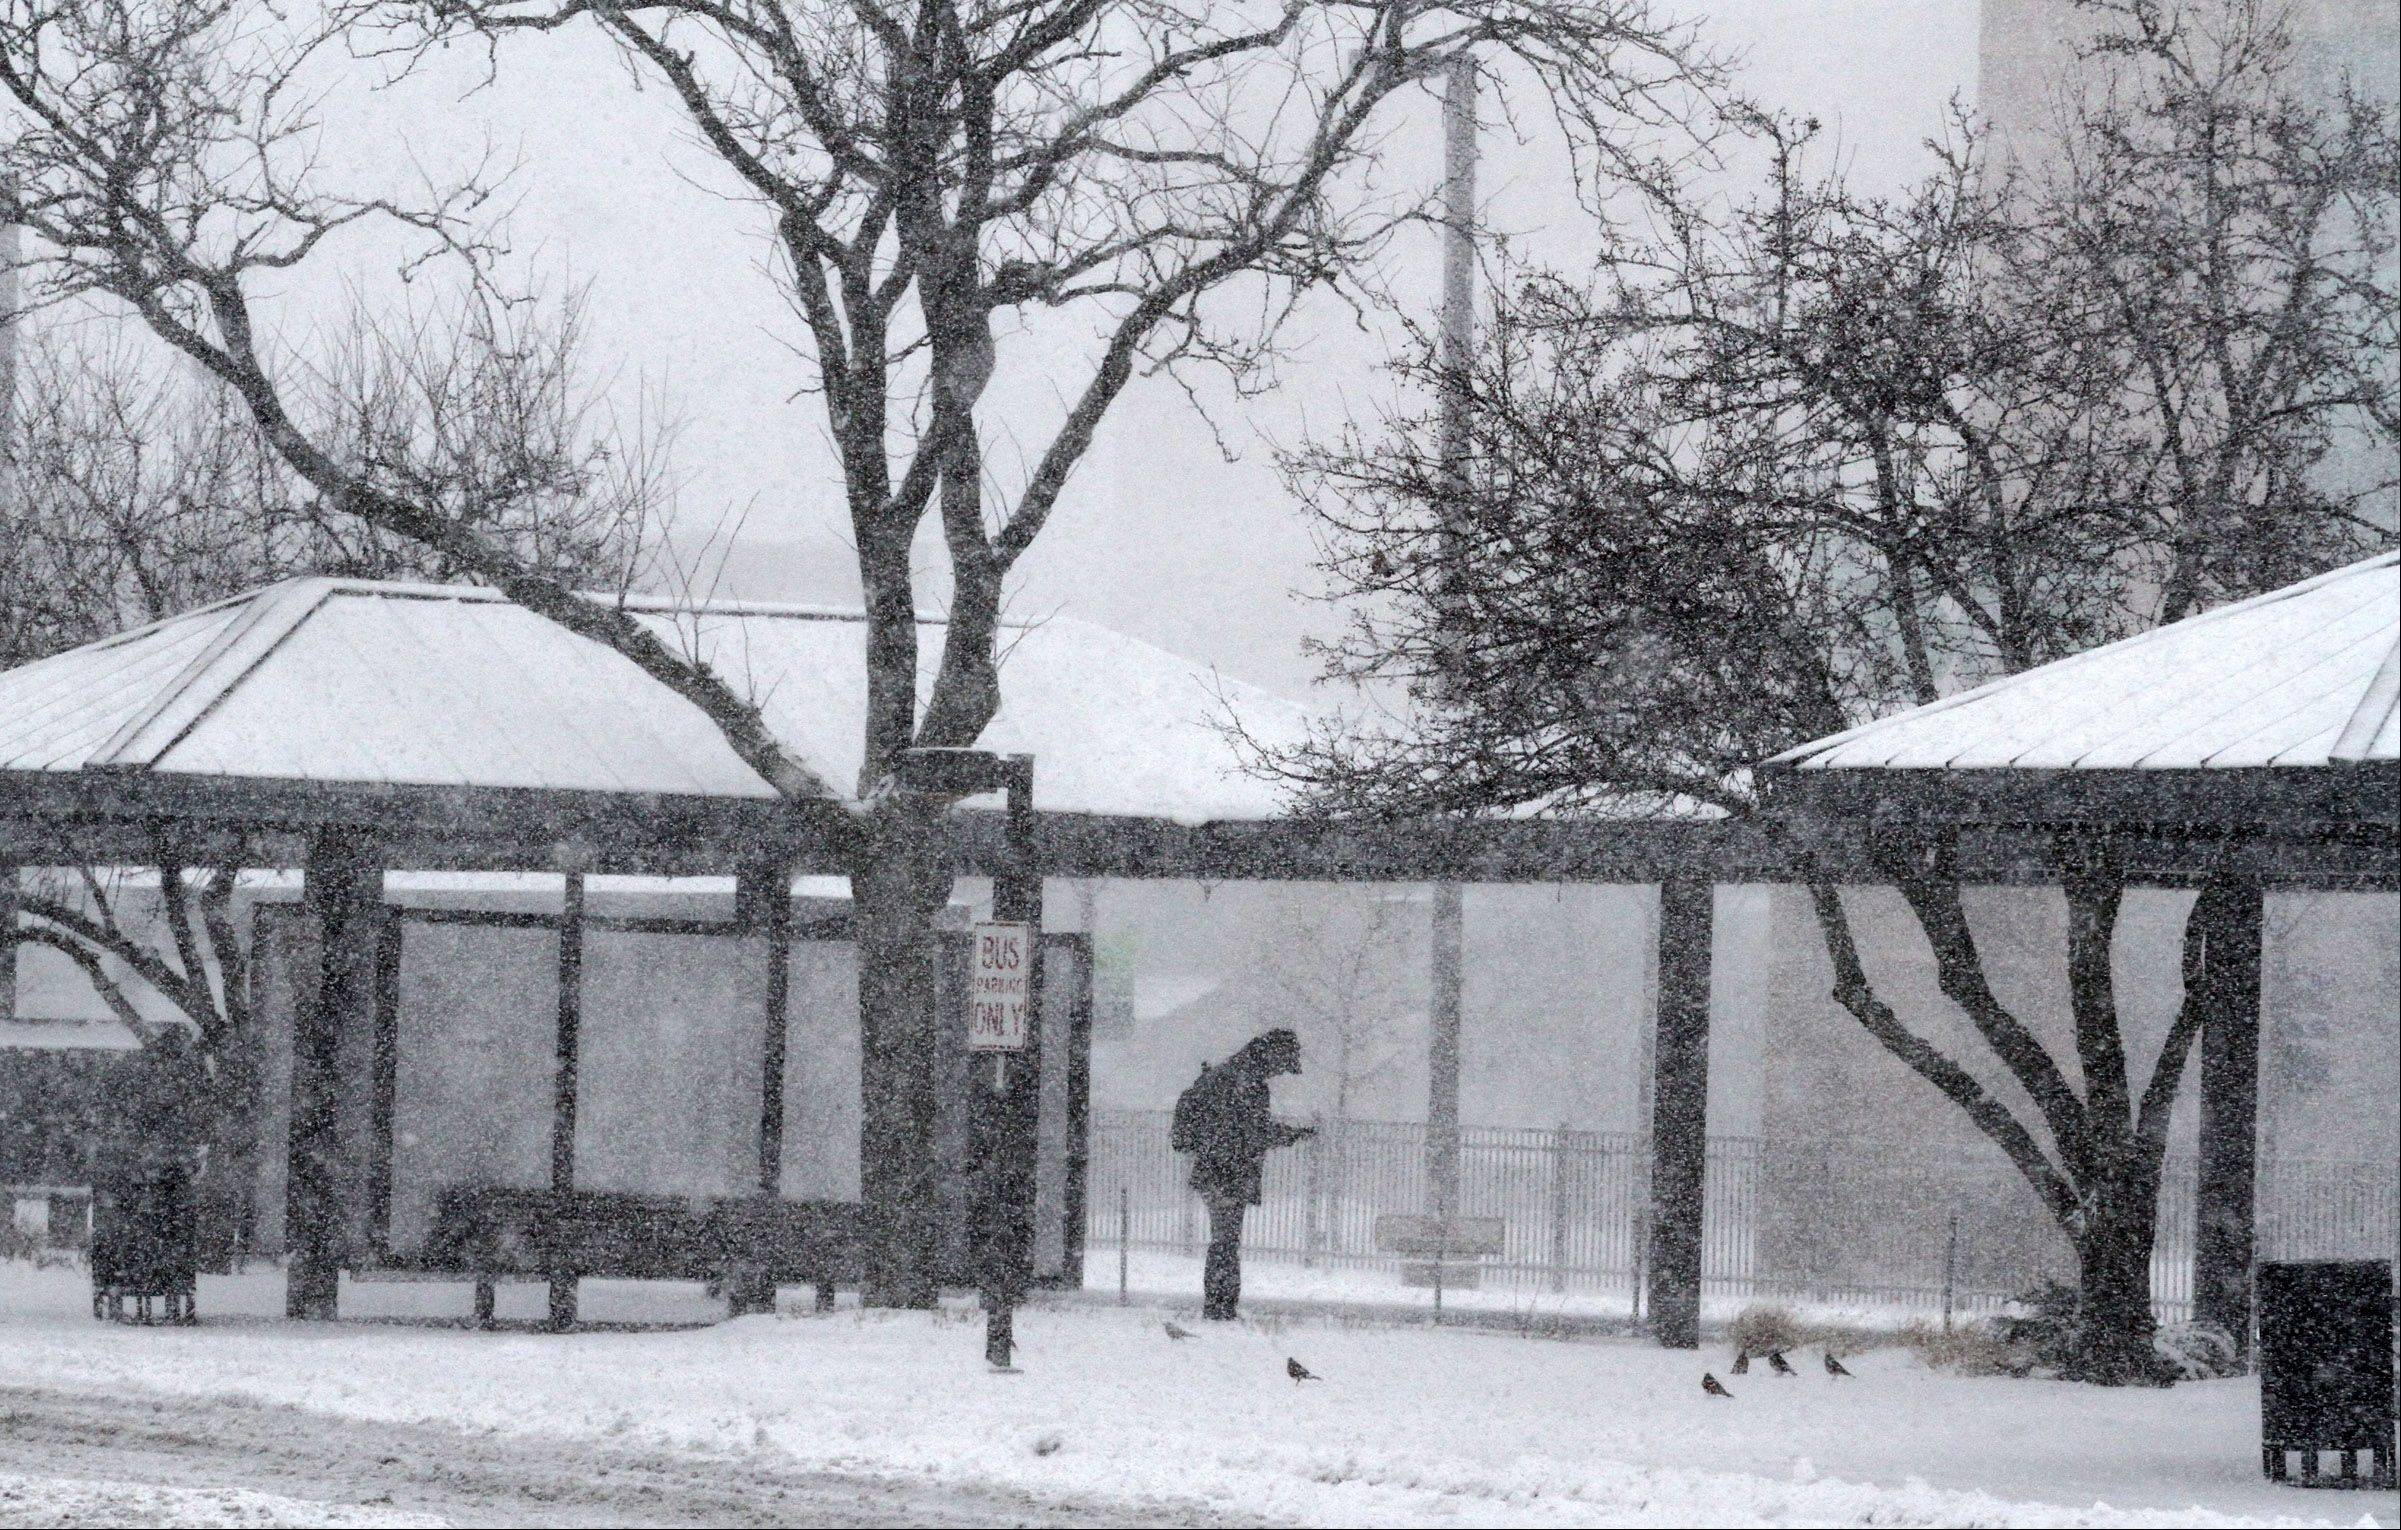 A commuter waits for a bus in Des Plaines near the train station on Tuesday, February 26, 2013.